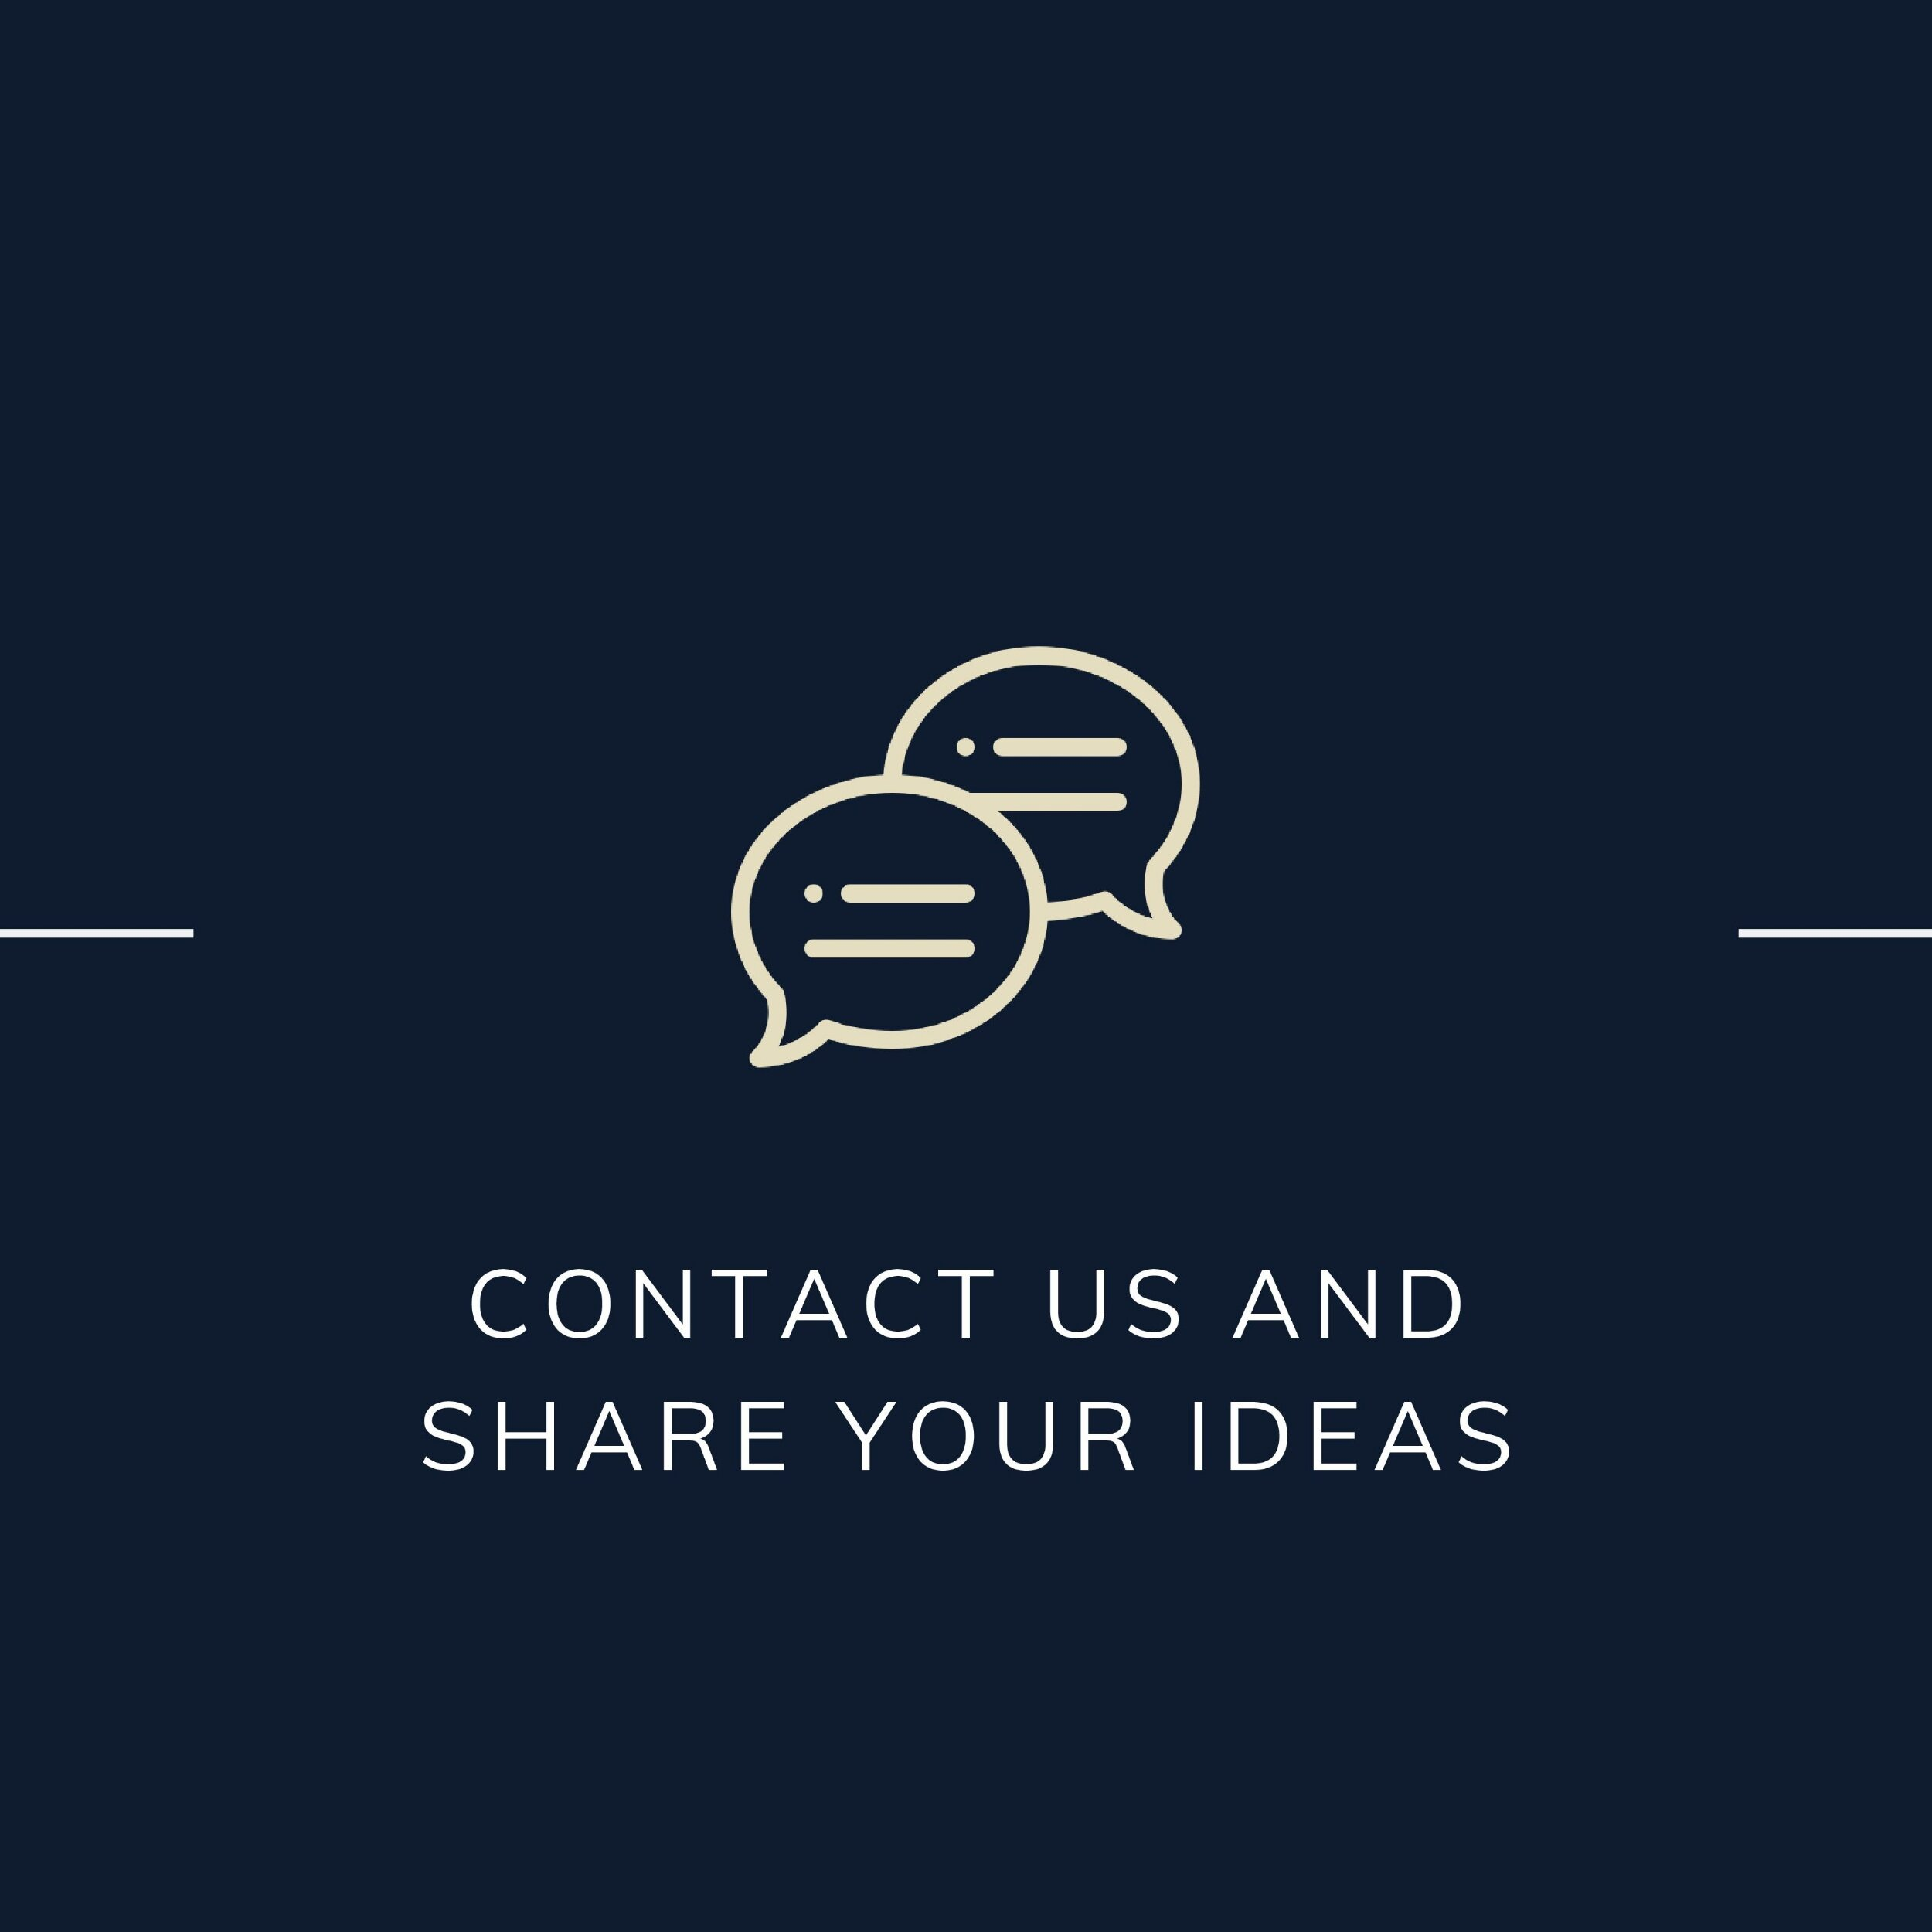 Contact us and share your ideas